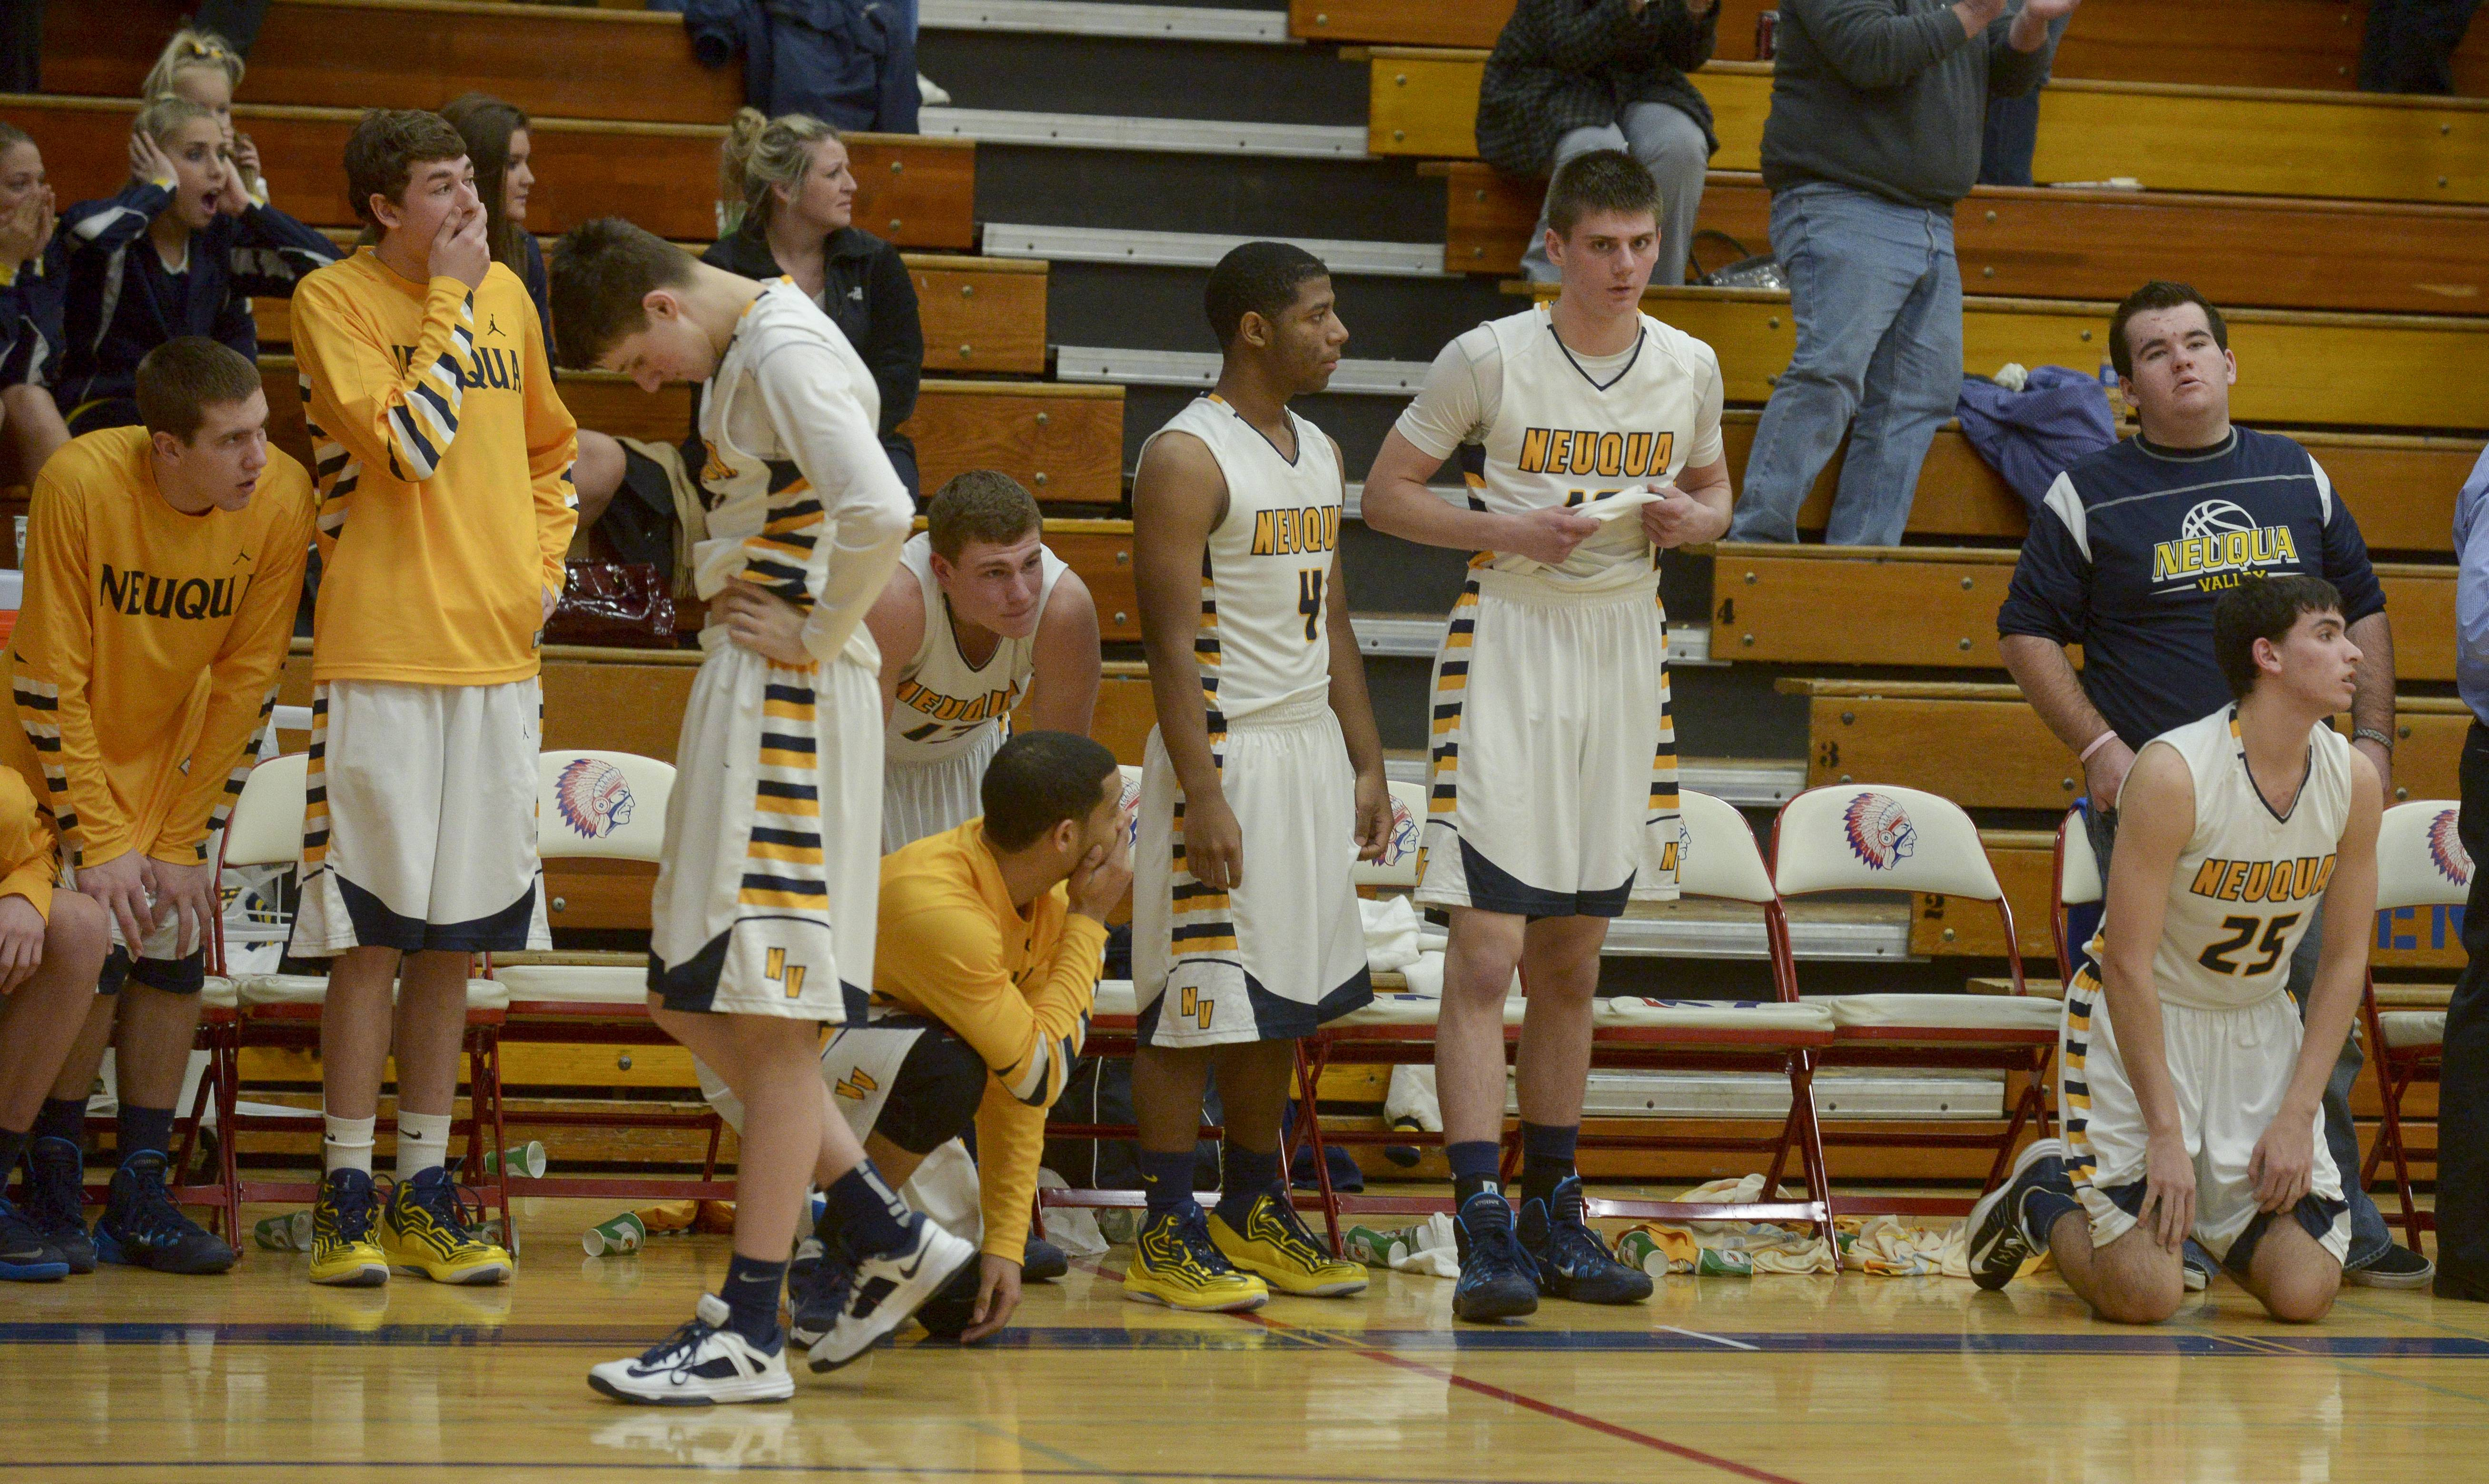 Players on the Neuqua Valley bench react after the game.